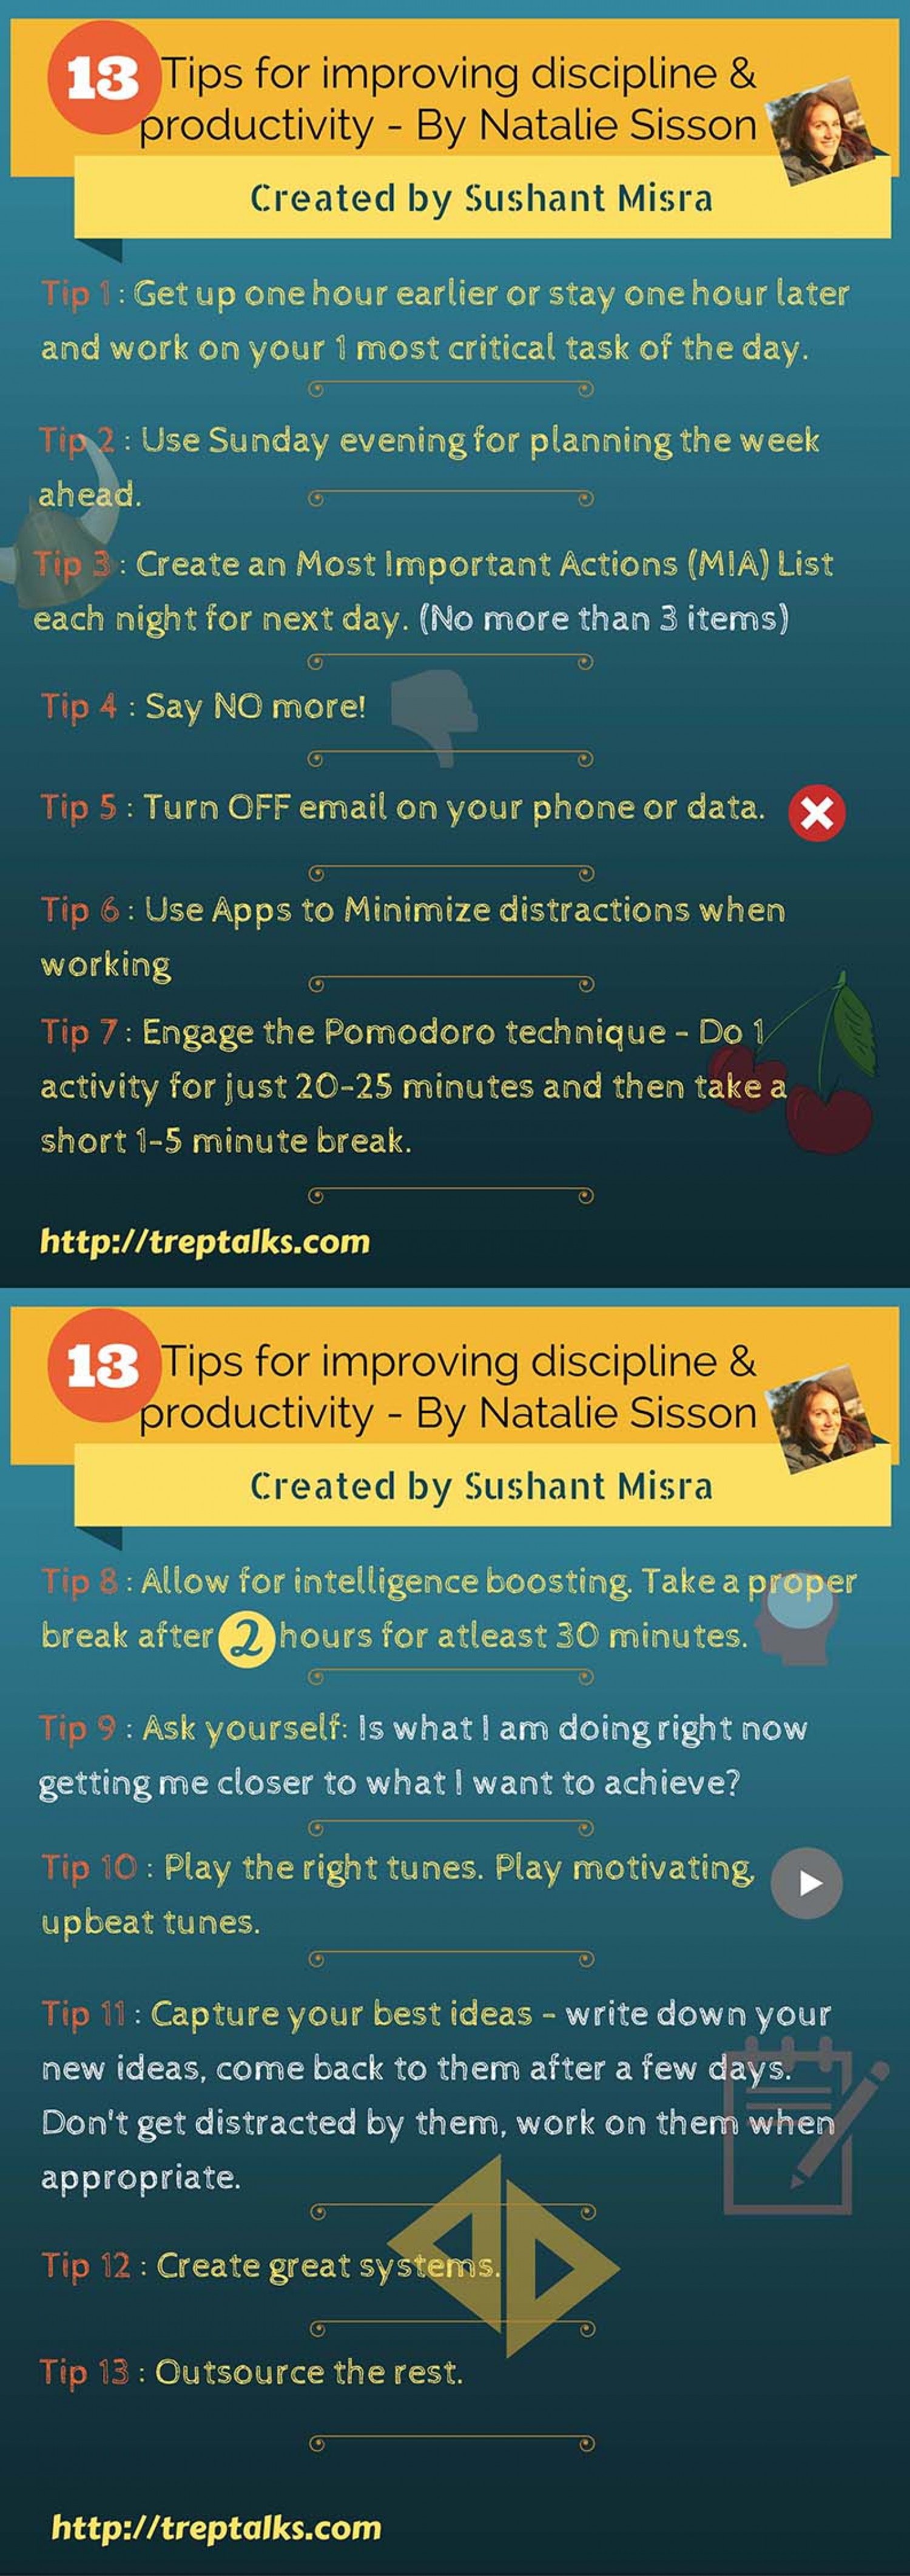 13 Tips for Improving Discipline & Productivity Infographic